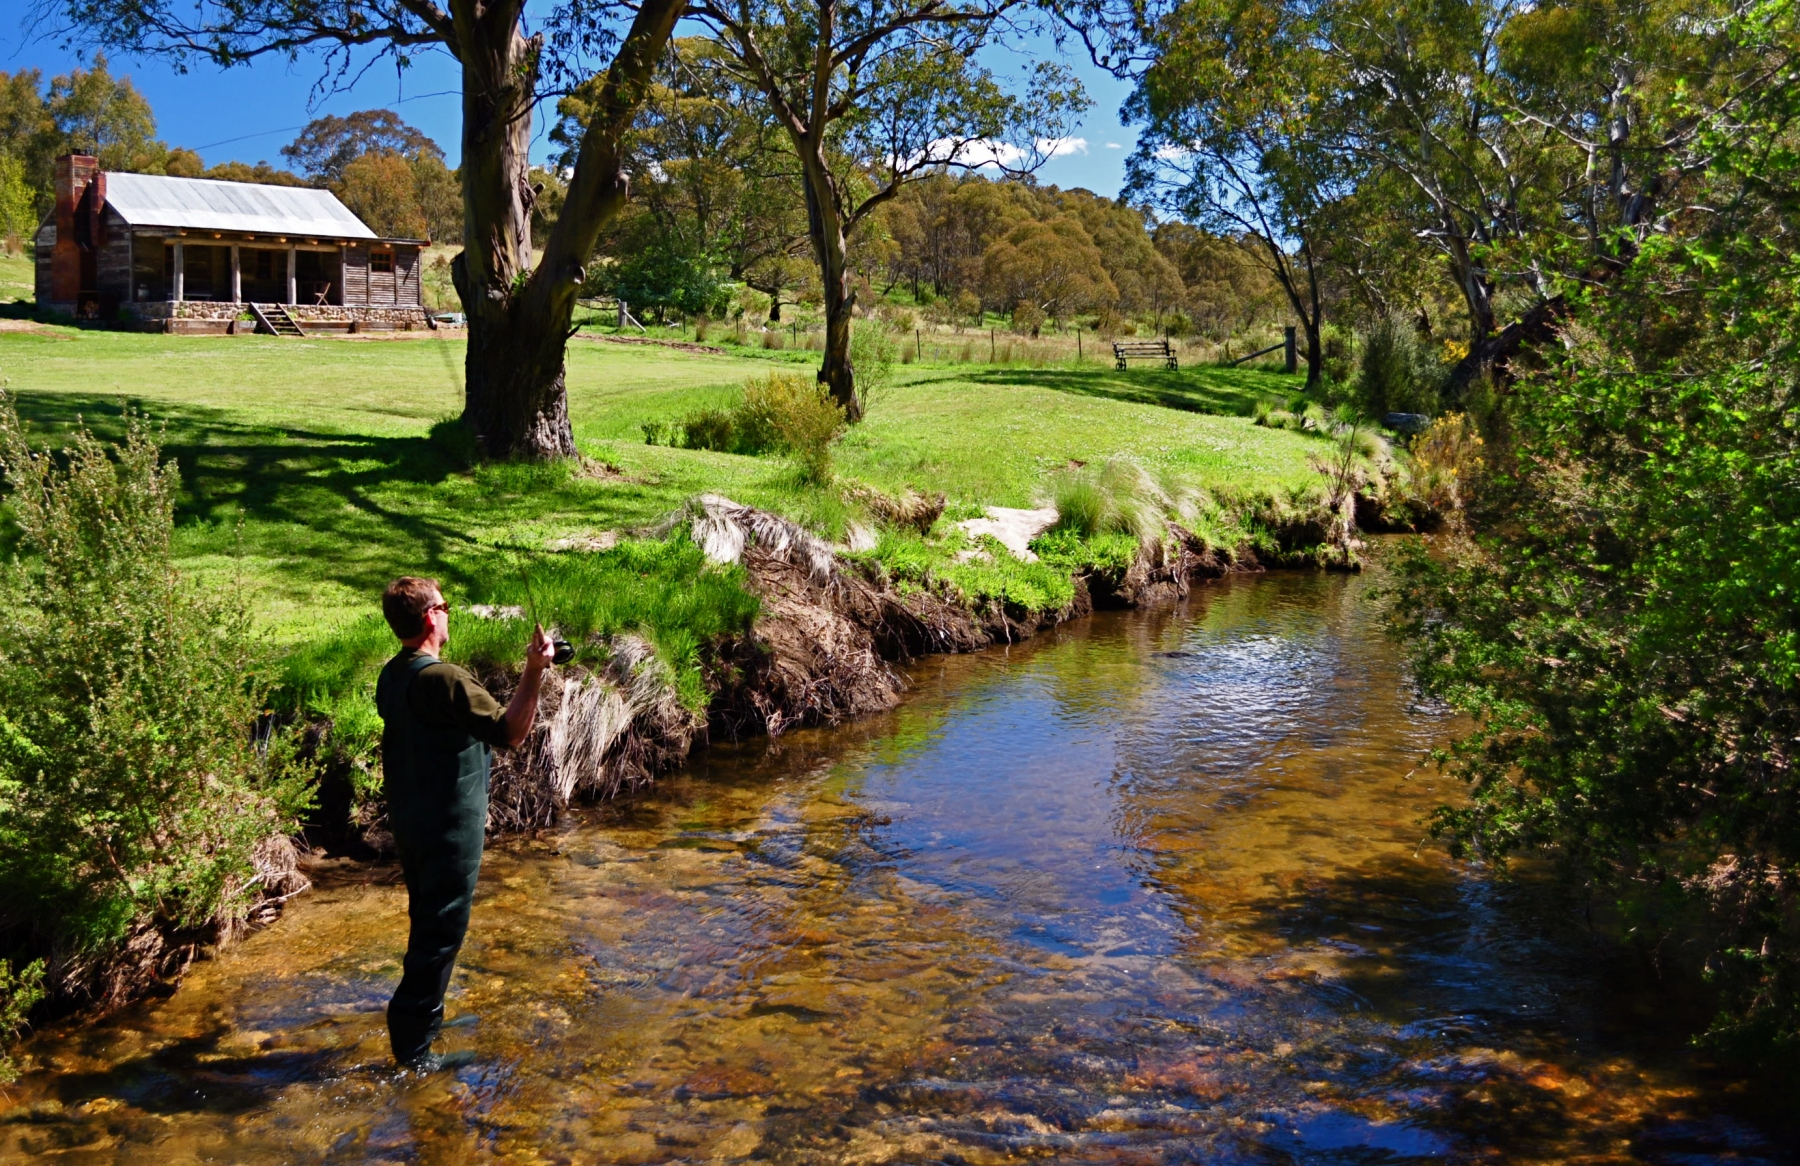 Summertime flyfishing for trout at Moonbah River Hut